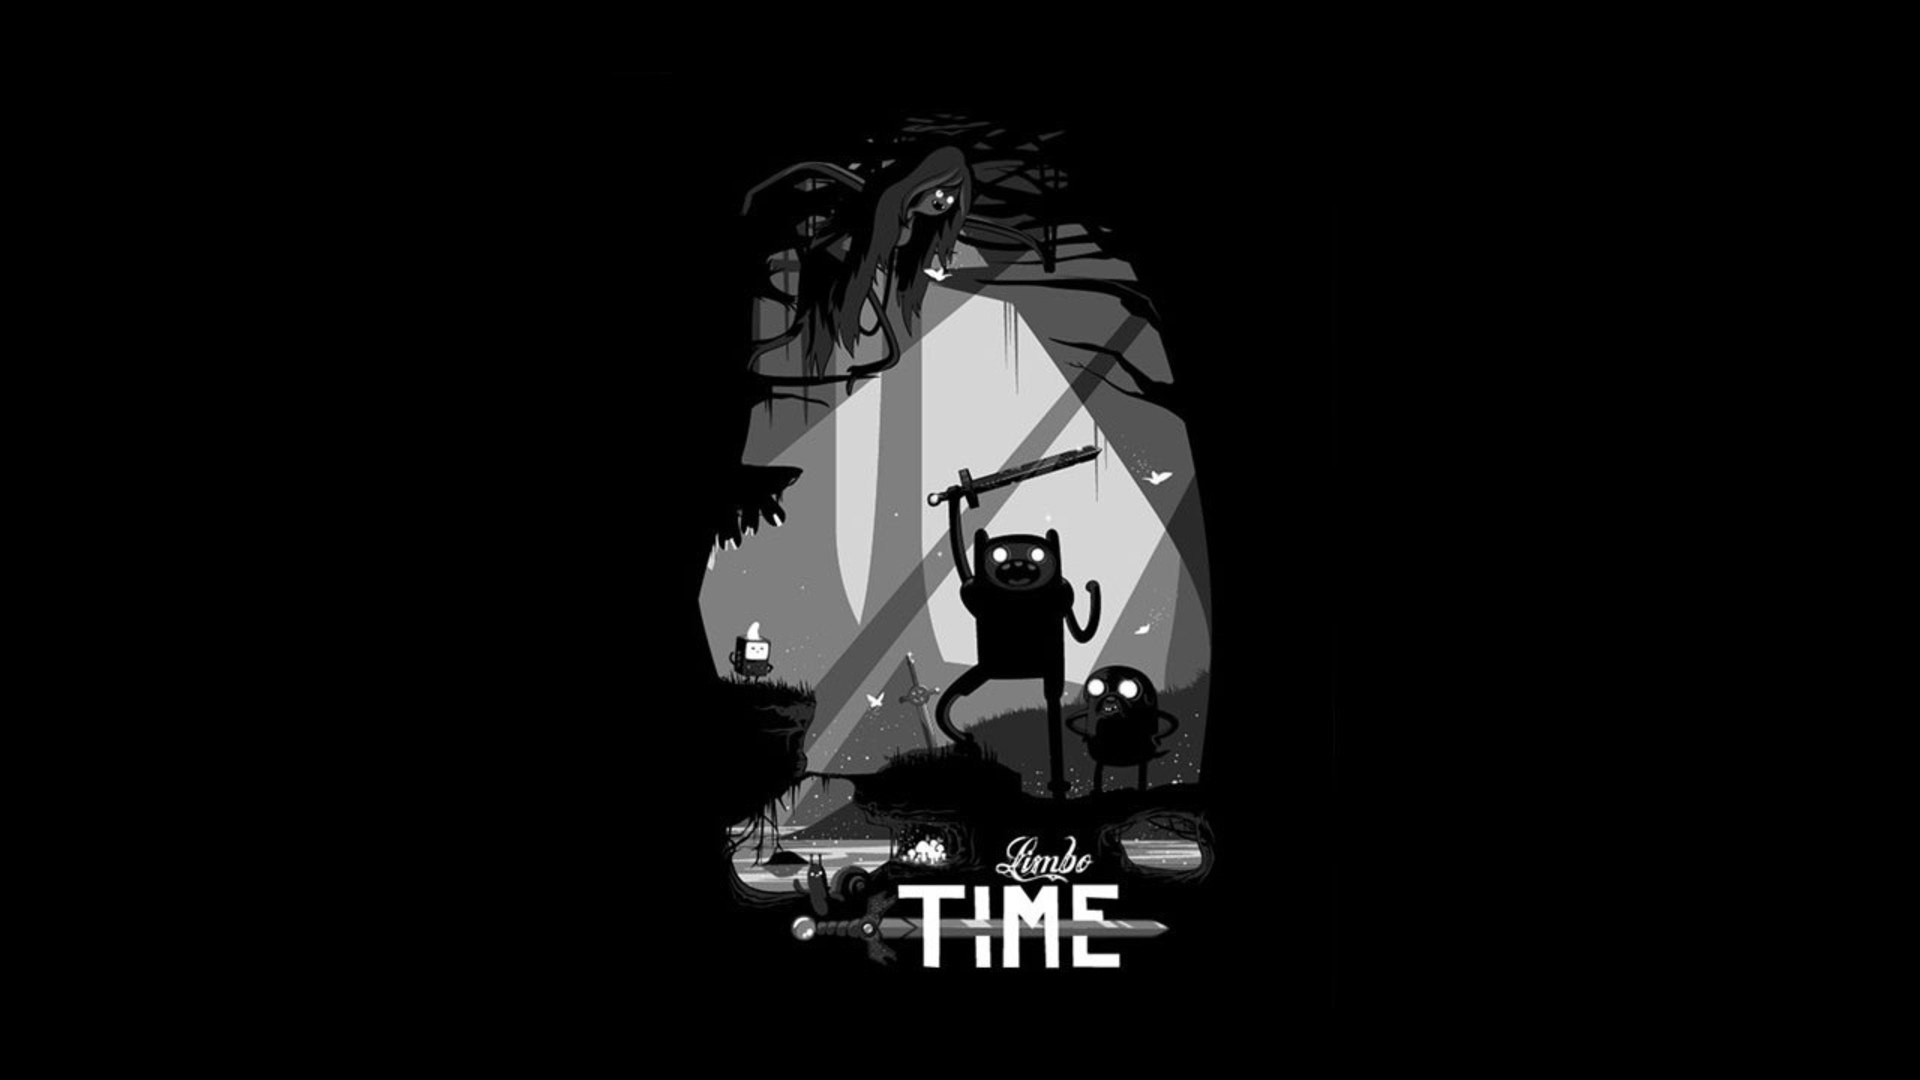 Pubg Wallpaper 4k Black And White: Adventure Time Limbo Wallpaper